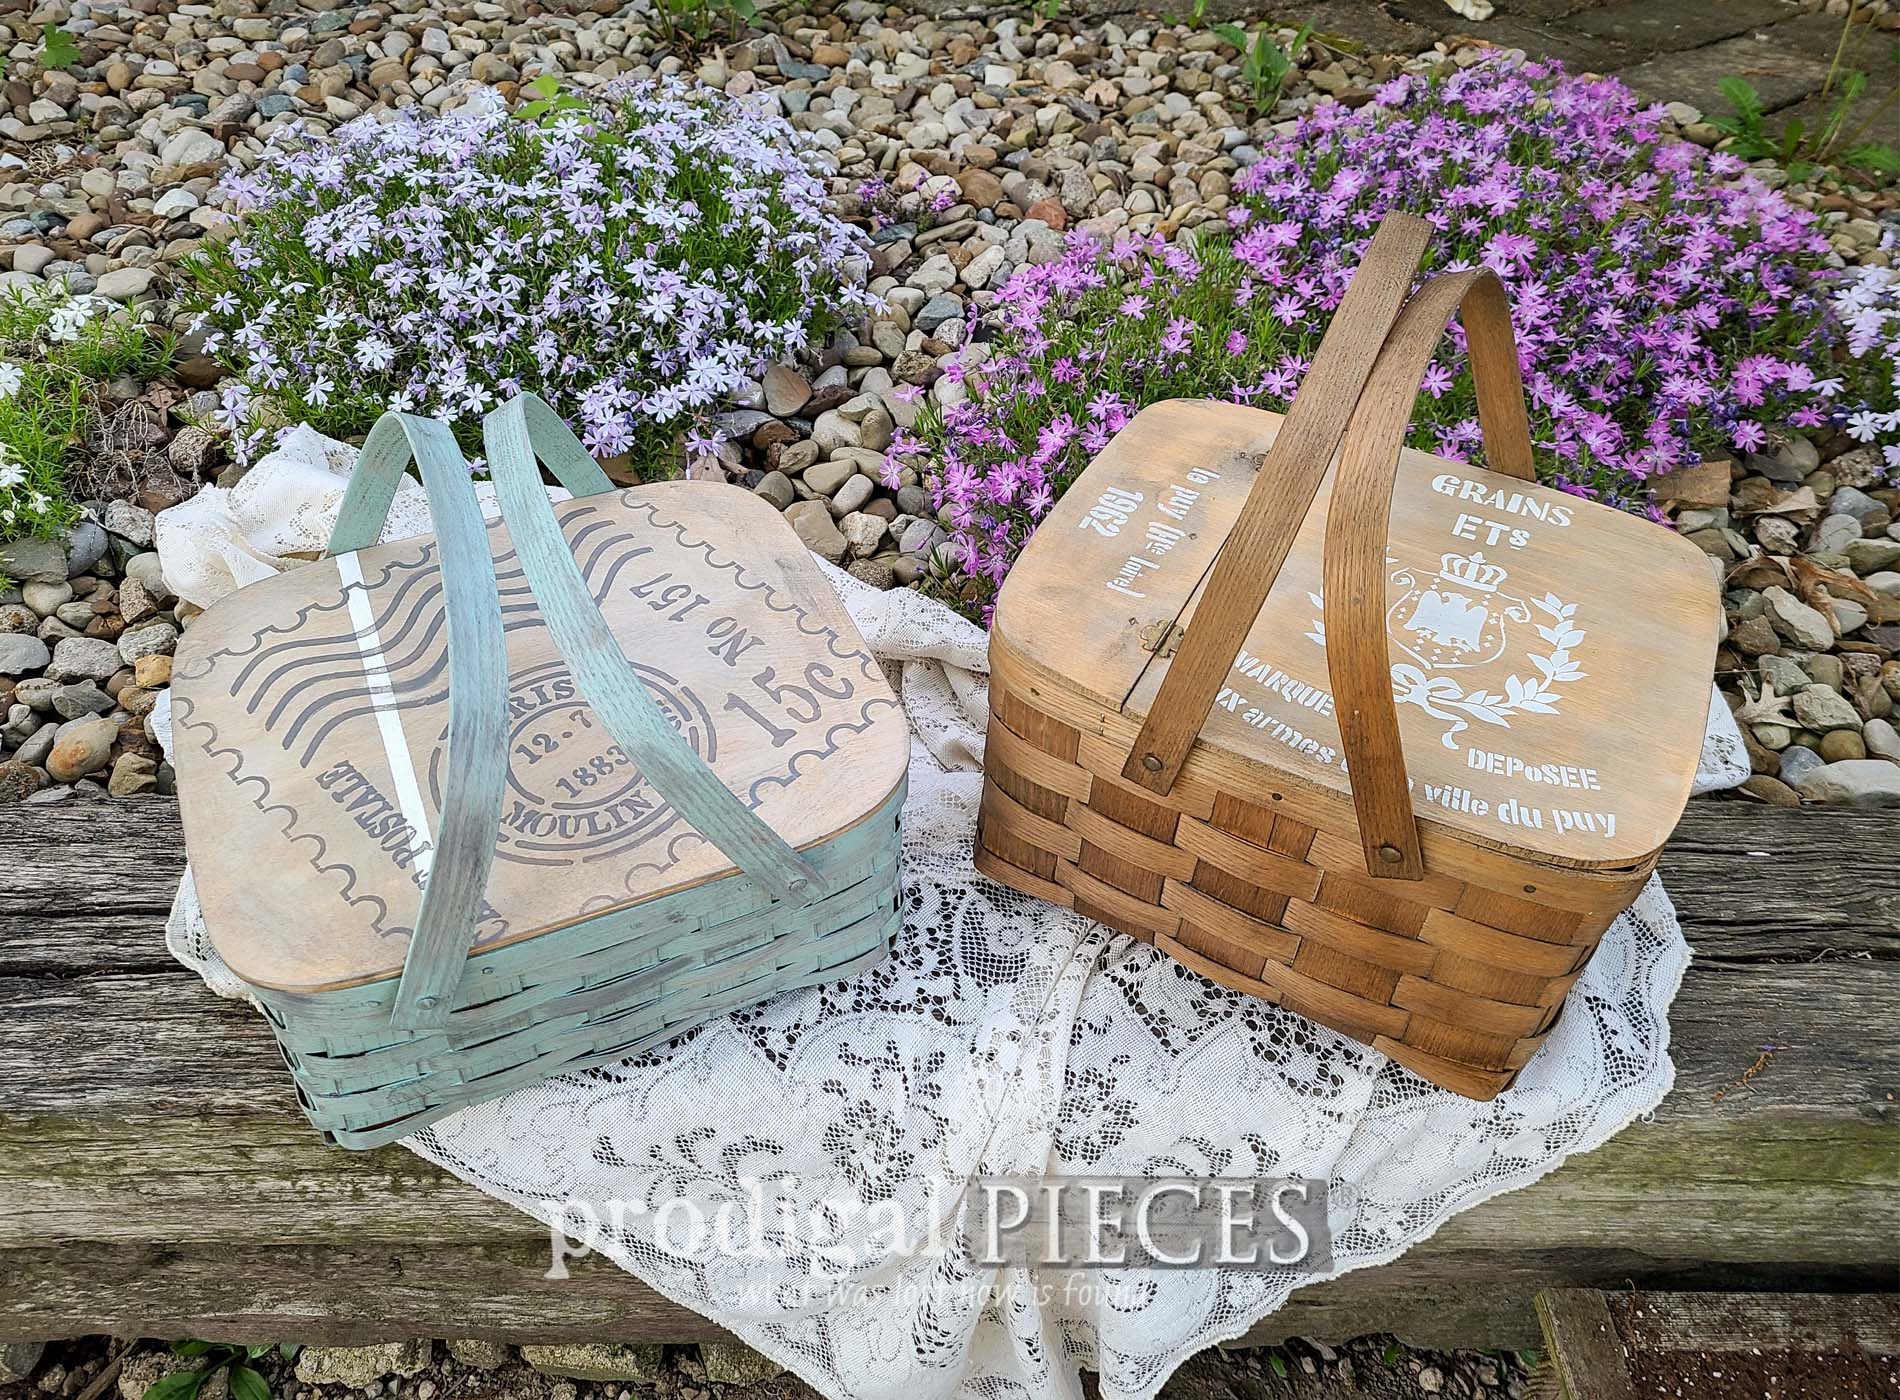 Featured Upcycled Picnic Baskets for Farmhouse Decor by Larissa of Prodigal Pieces | prodigalpieces.com #prodigalpieces #diy #summer #picnic #farmhouse #cotttage